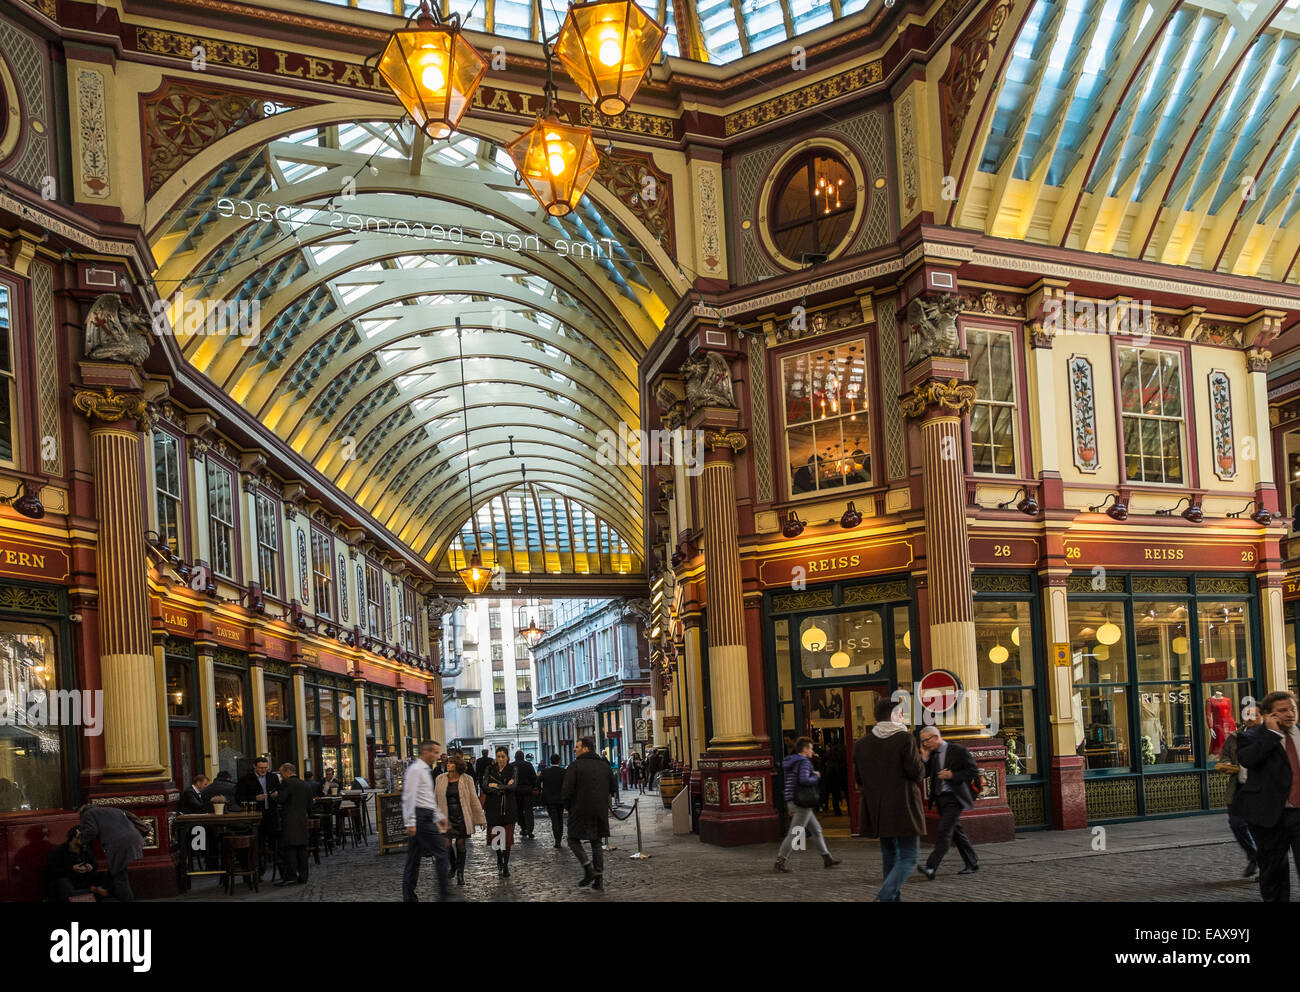 Leadenhall Market in the City of London - Stock Image